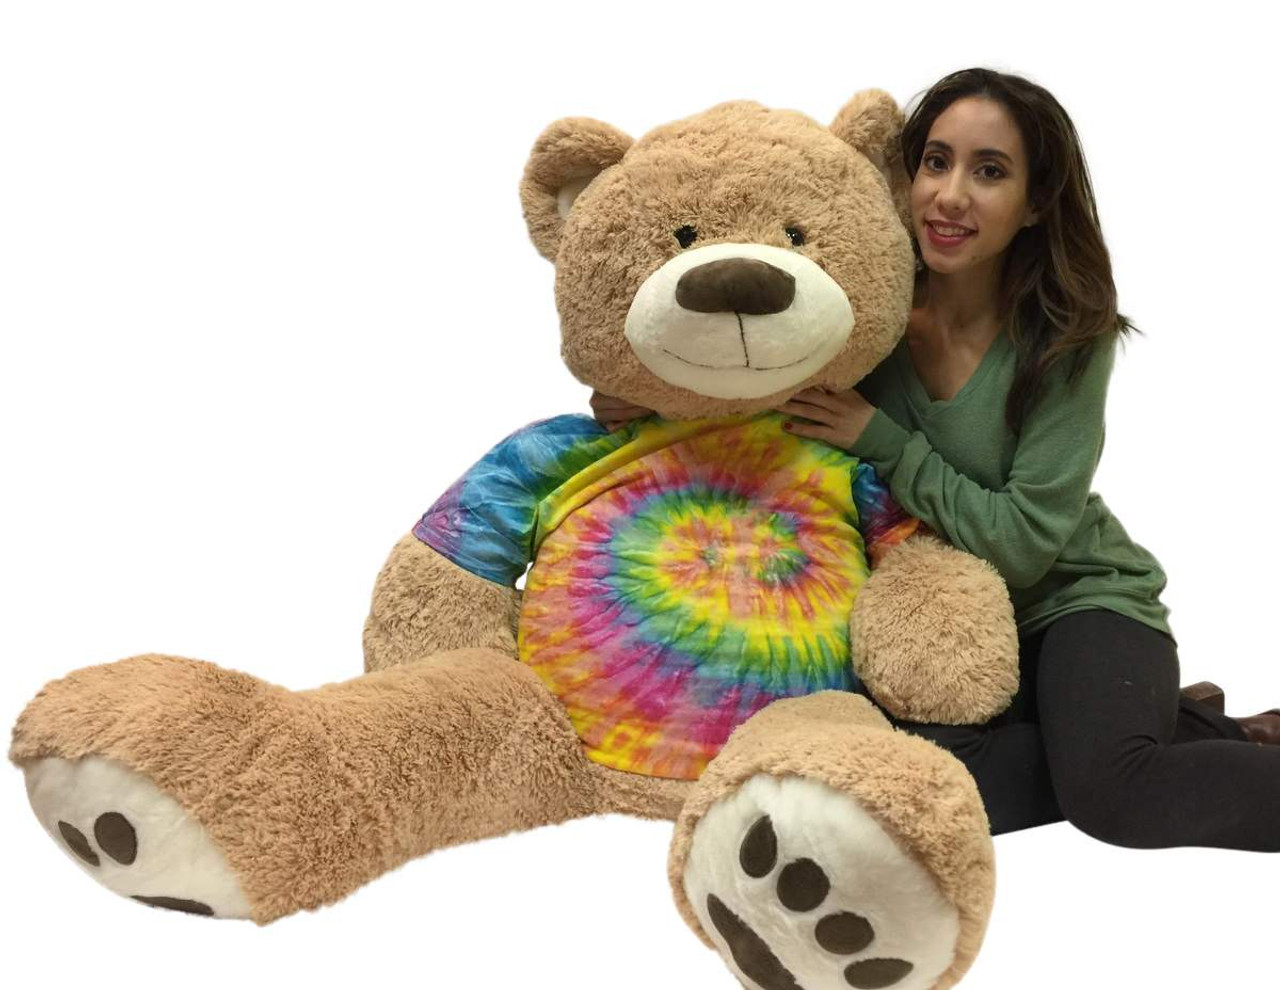 15c655eb2c6 Big Plush Giant Teddy Bear 5 Feet Tall Wears Removable Tie Dye T-shirt